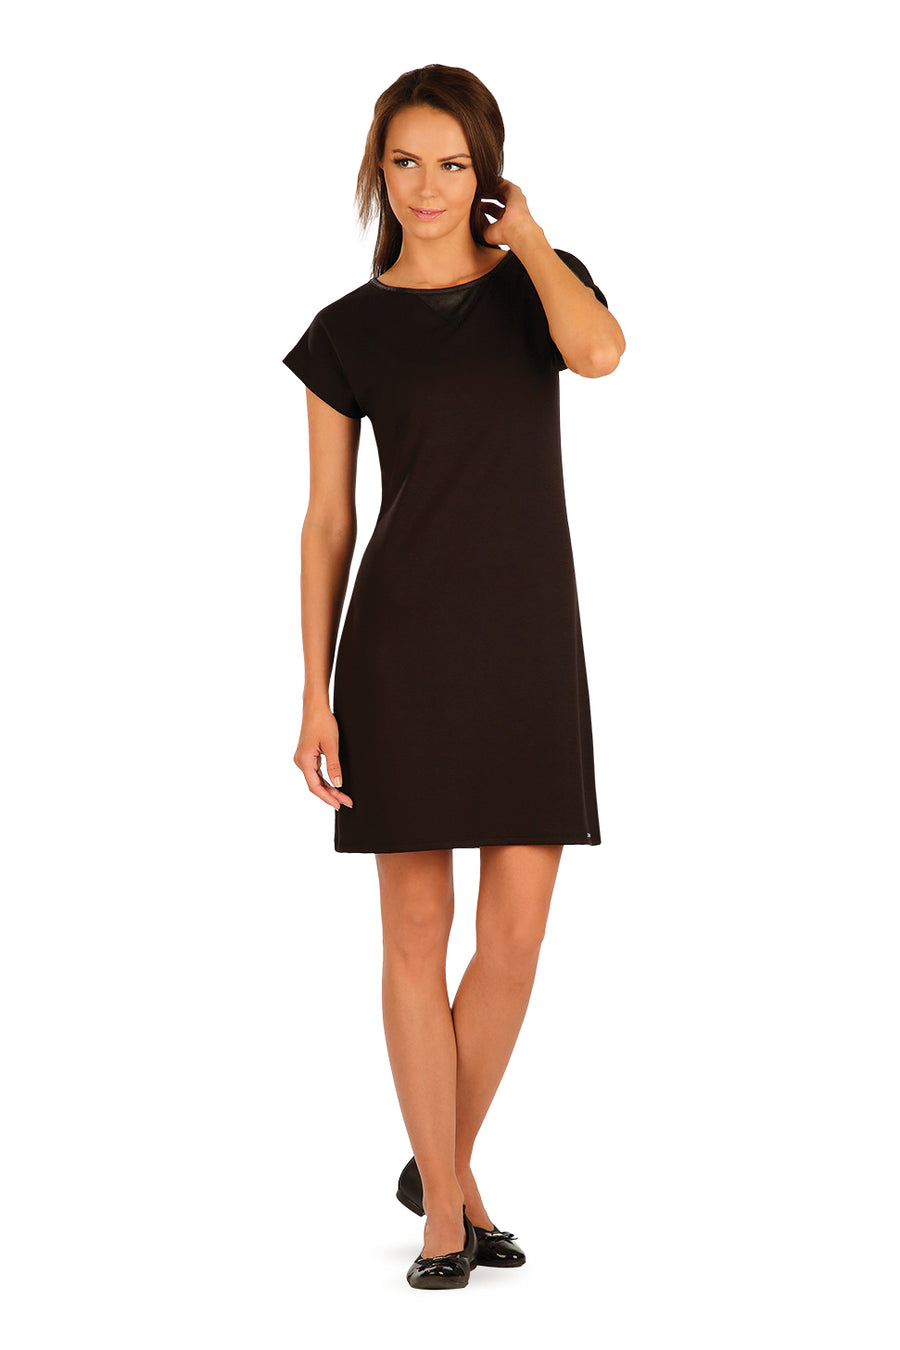 Black Dress With Short Wing Sleeve - onelike